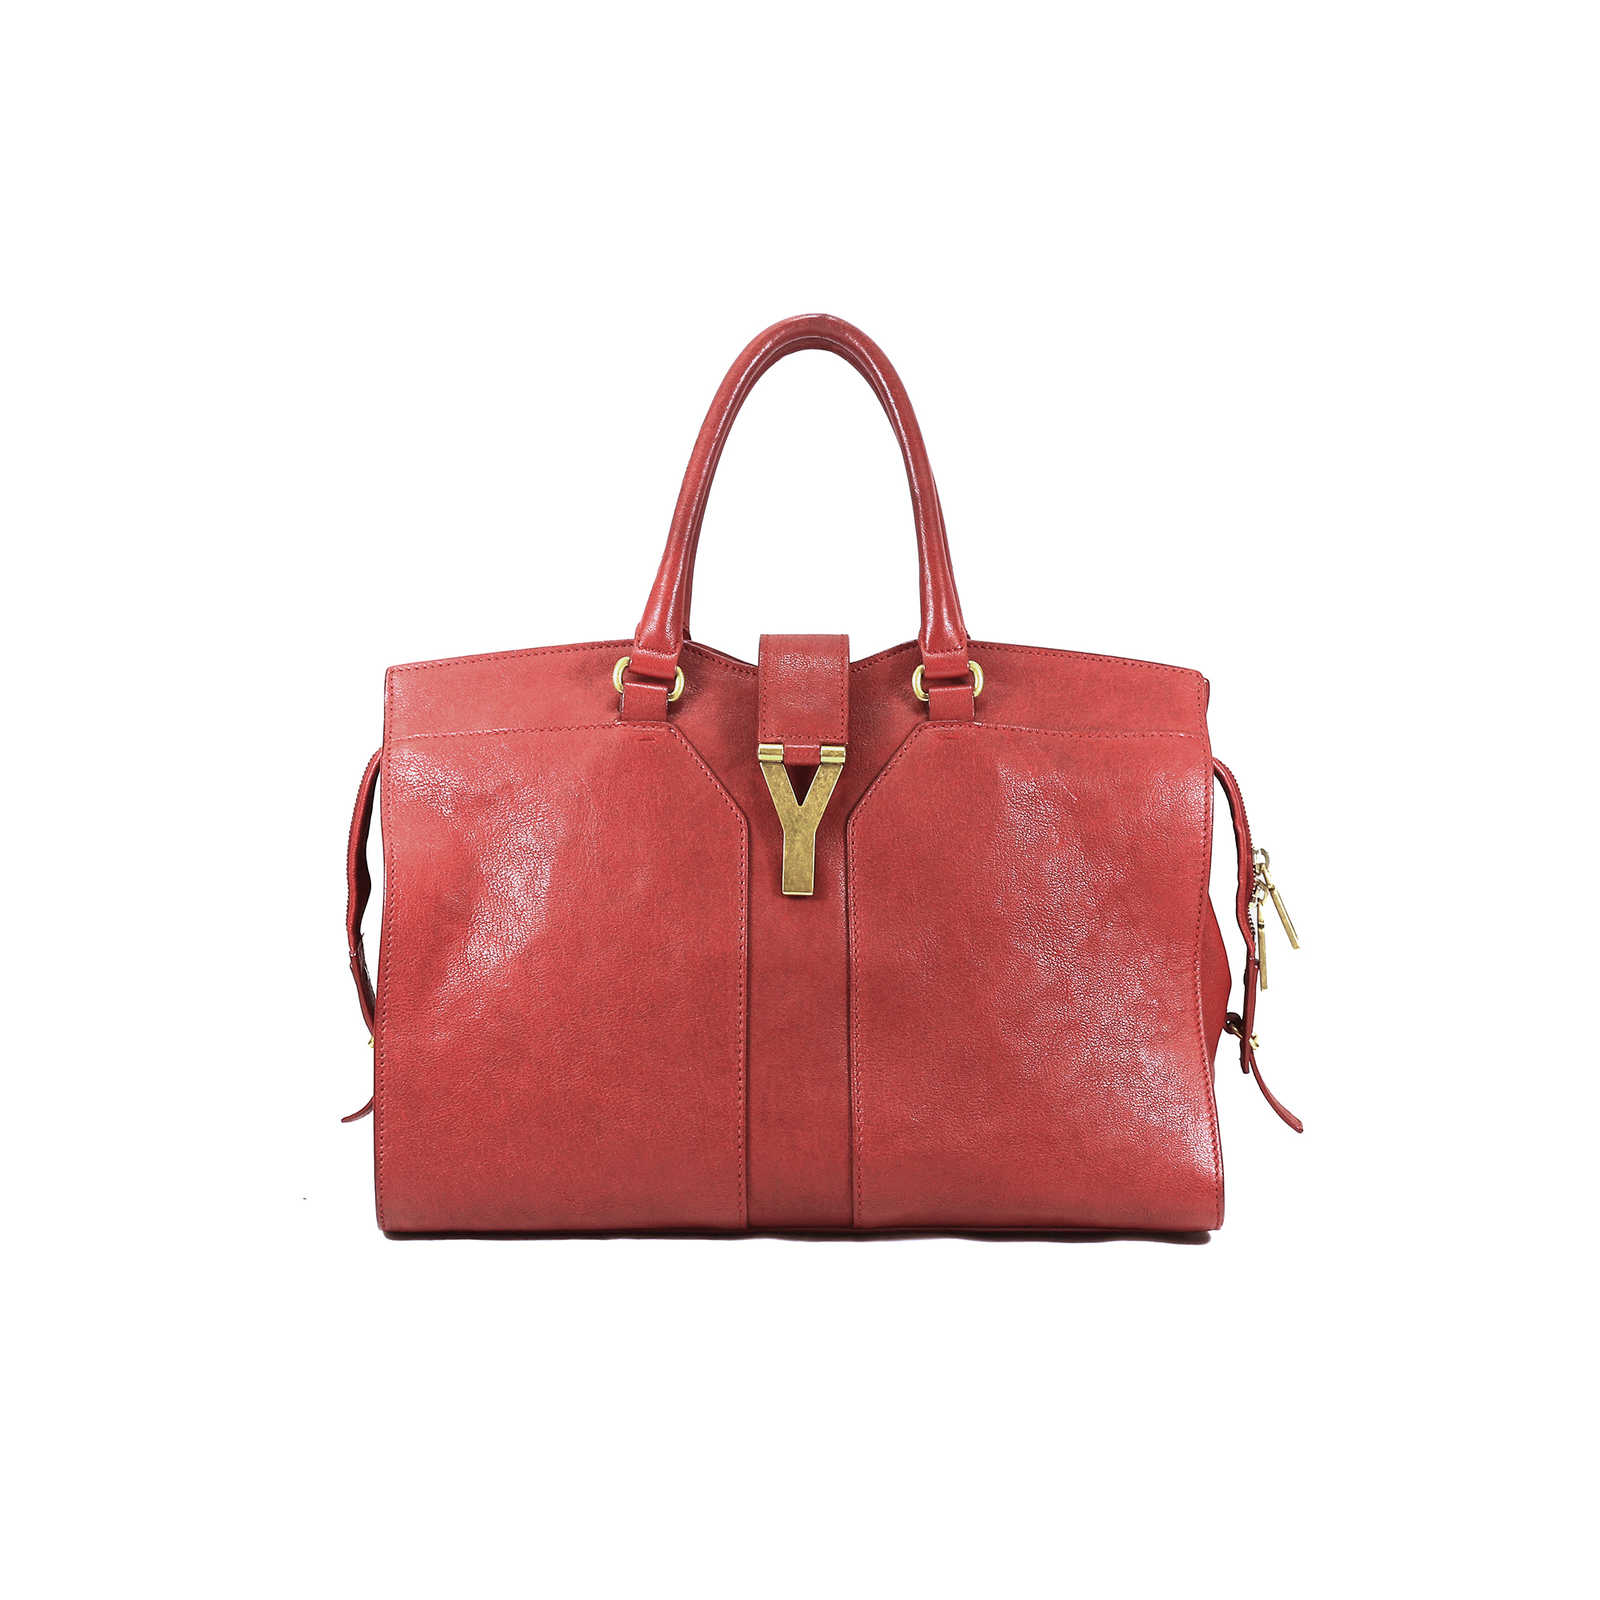 2f8f216e26e0 Tap to expand · Authentic Second Hand Yves Saint Laurent Chyc Cabas Bag  (PSS-025-00043) ...